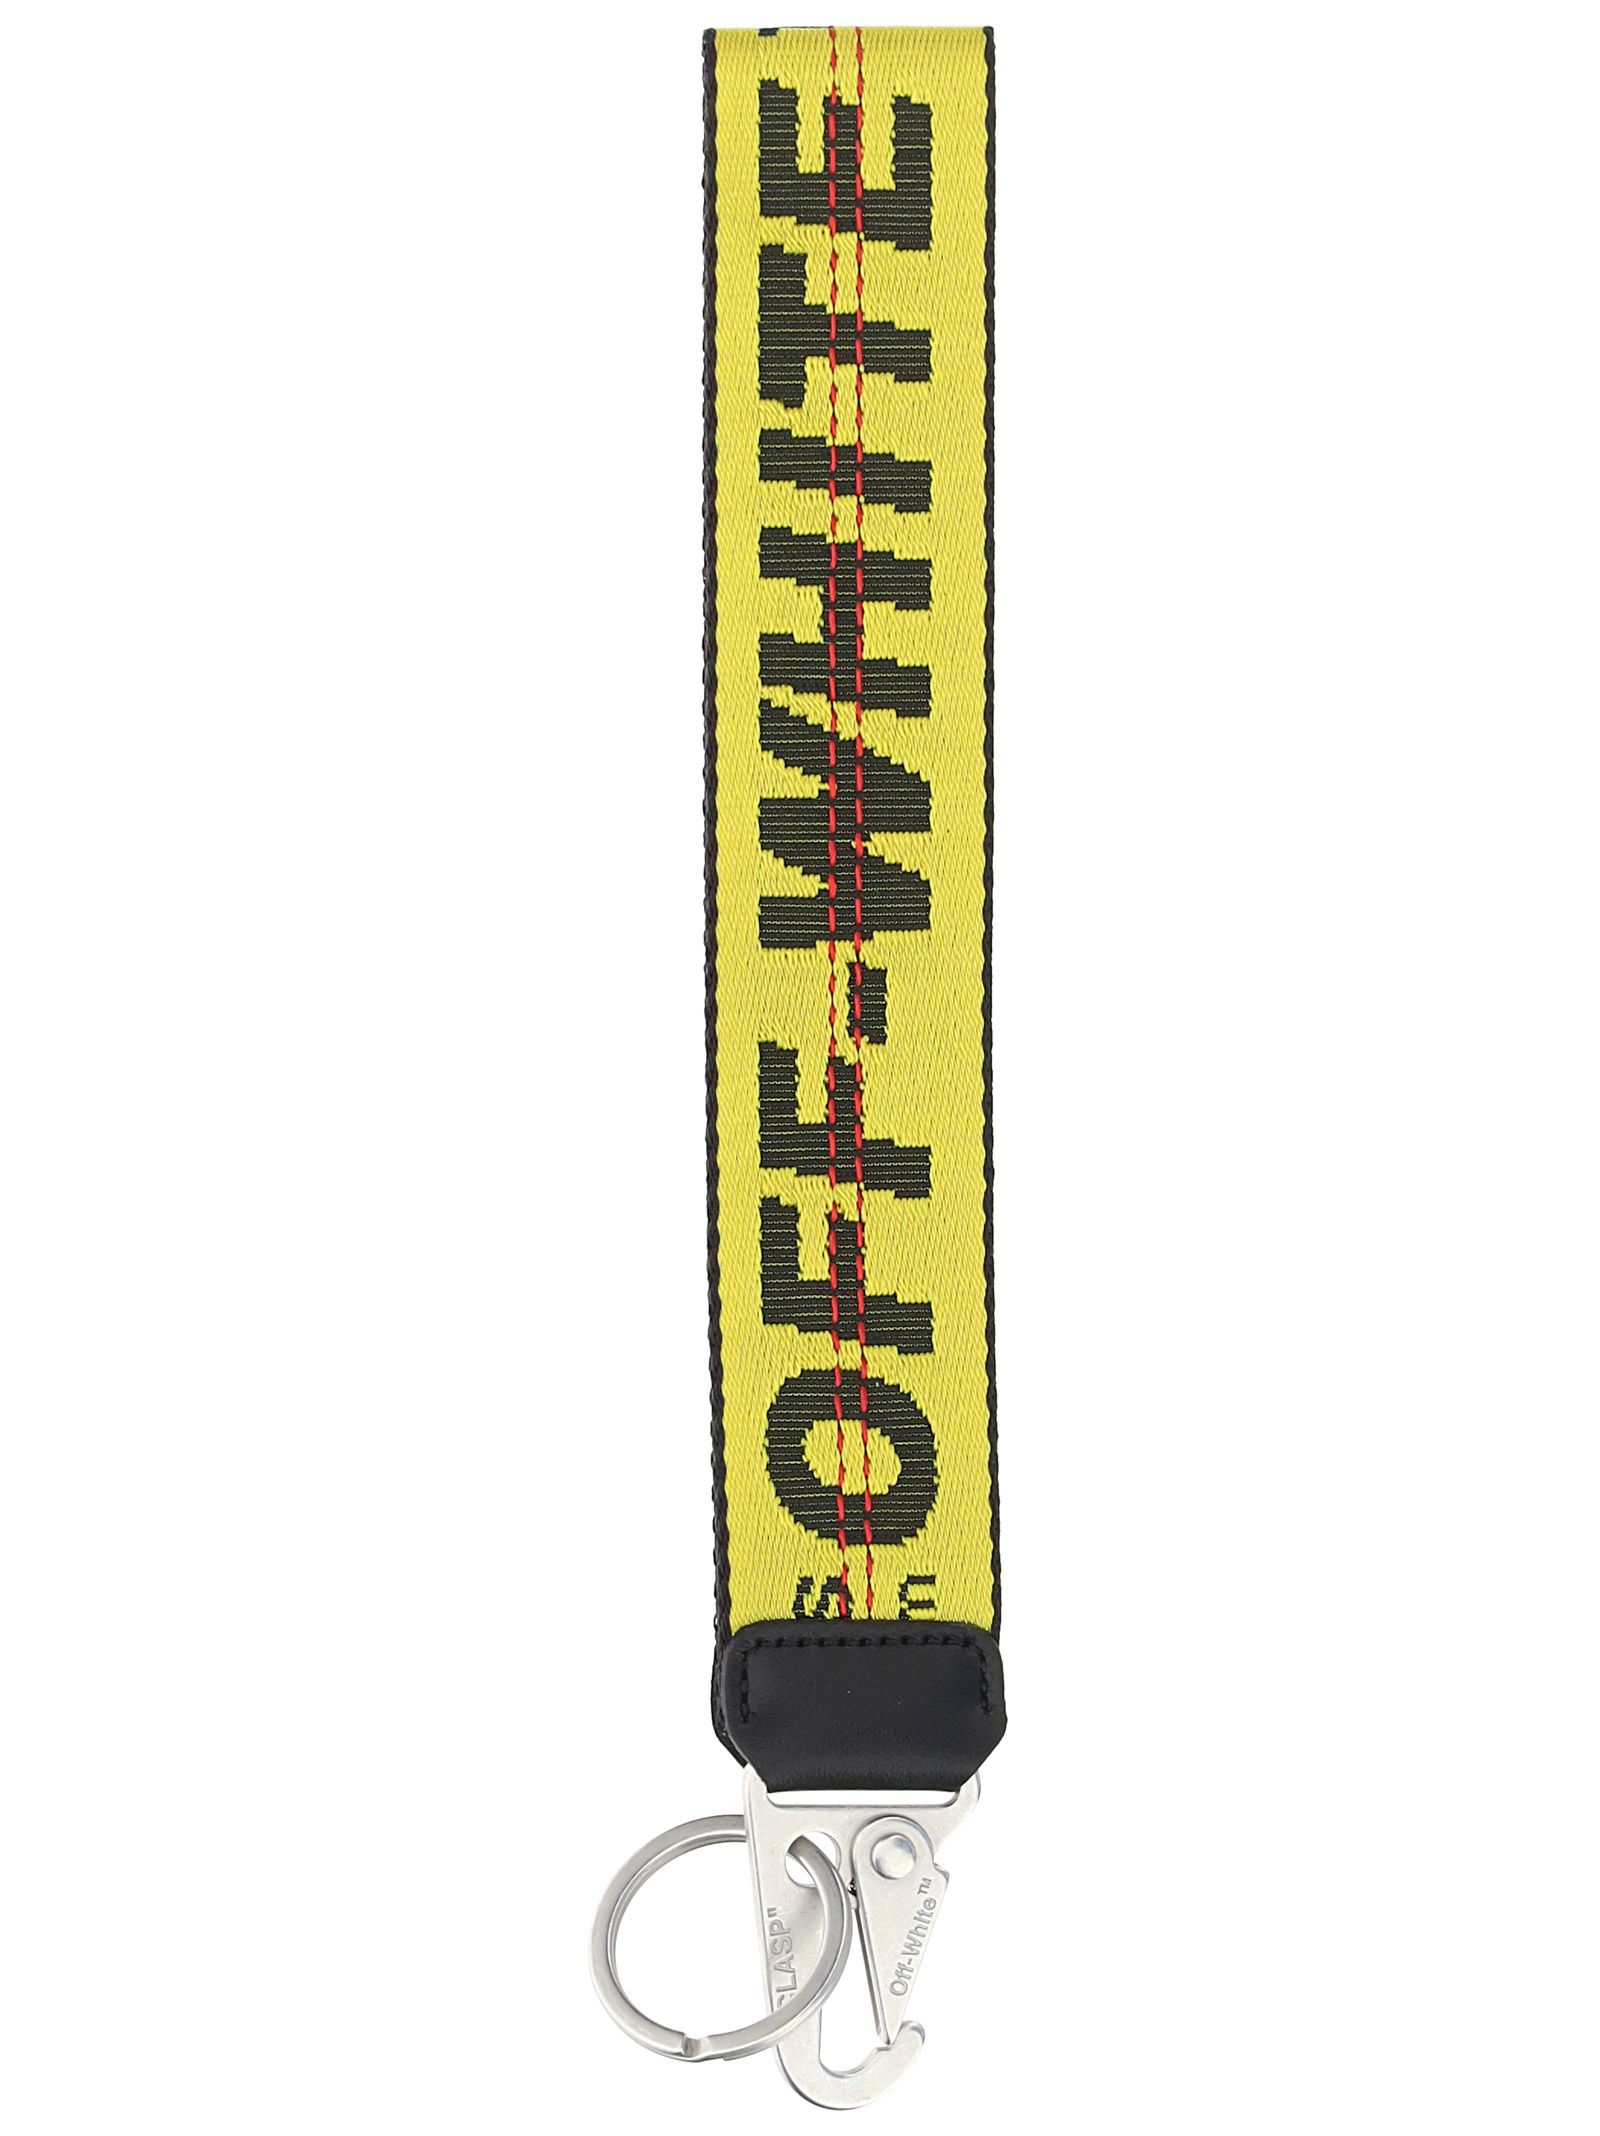 Off-White Accessories OFF-WHITE MEN'S YELLOW OTHER MATERIALS KEY CHAIN